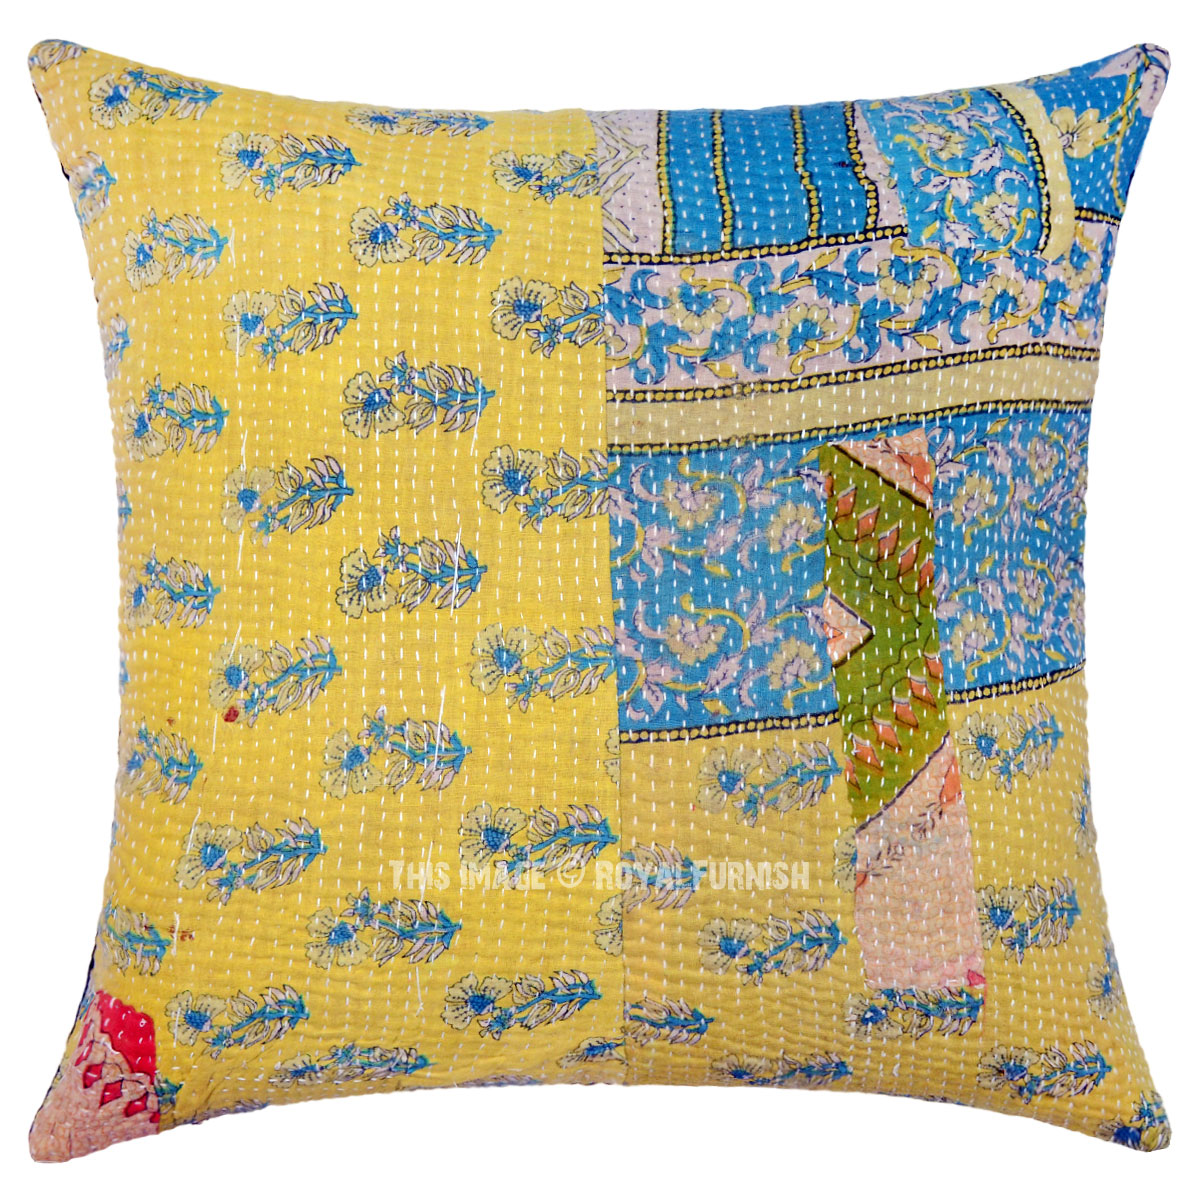 Pale Yellow Throw Pillow Cover : Light Yellow One-Of-A-Kind Decorative Small Flower Vintage Kantha Pillow Cover - RoyalFurnish.com